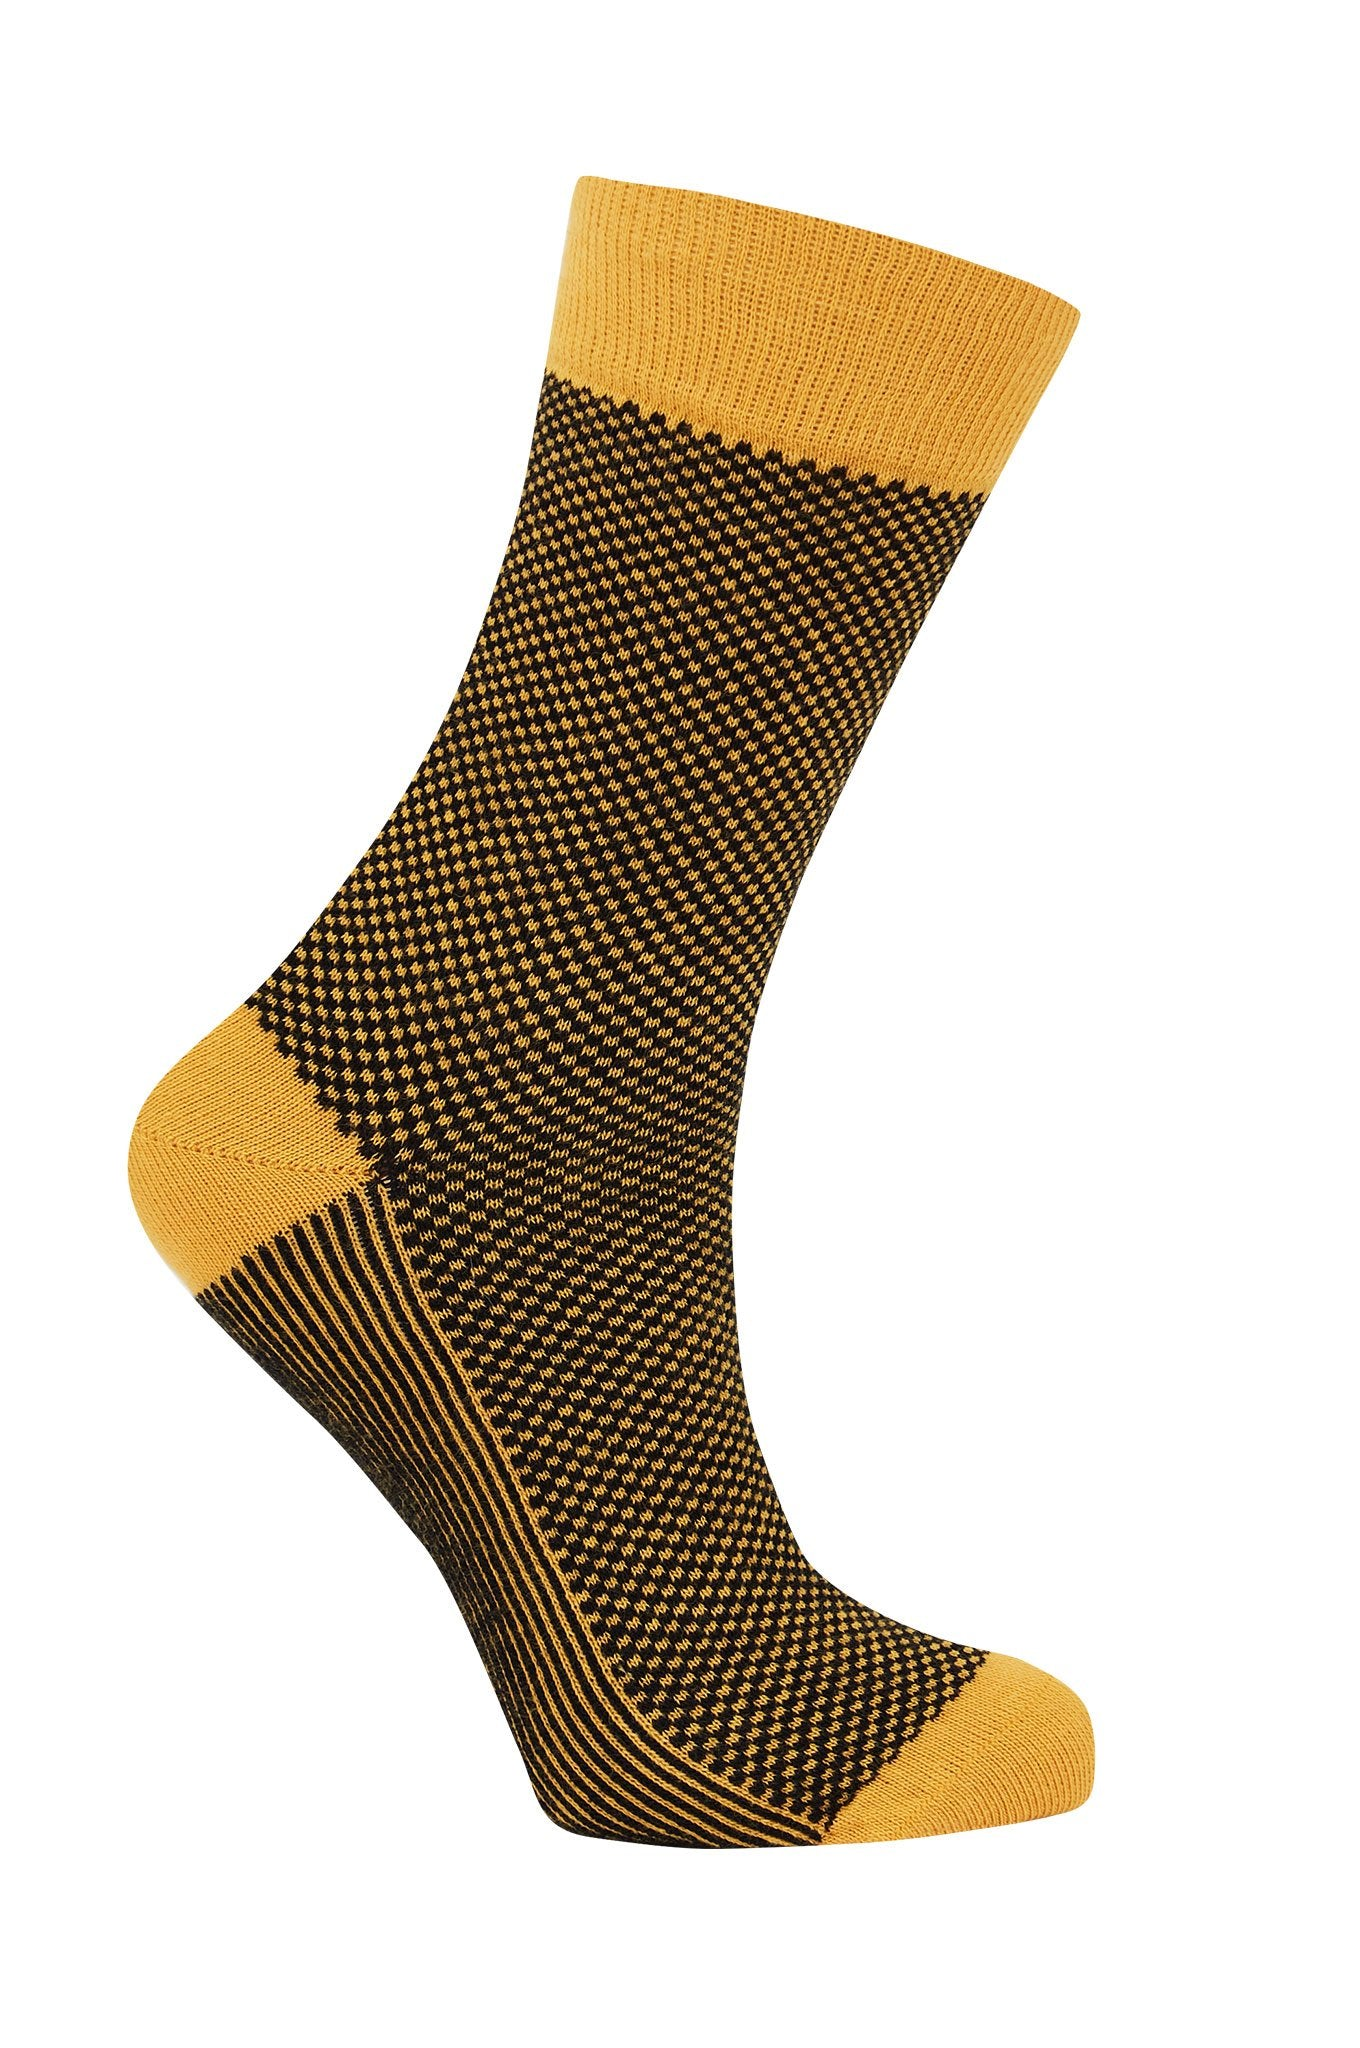 DOTS Gold - GOTS Organic Cotton Socks